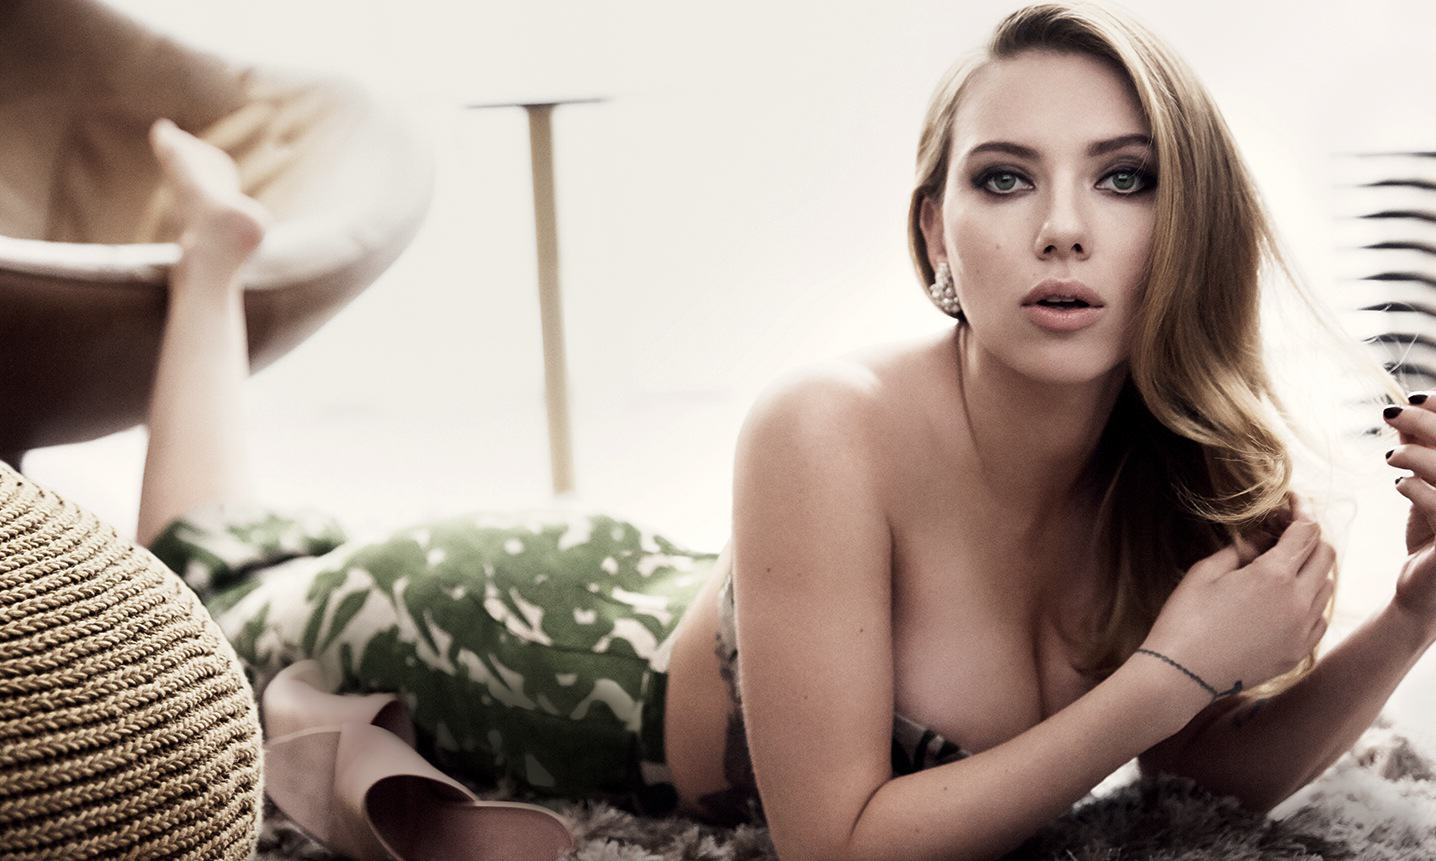 UNILAD johanson7 Scarlett Johansson Loses Battle To Ban Book Presenting Her As Sex Object